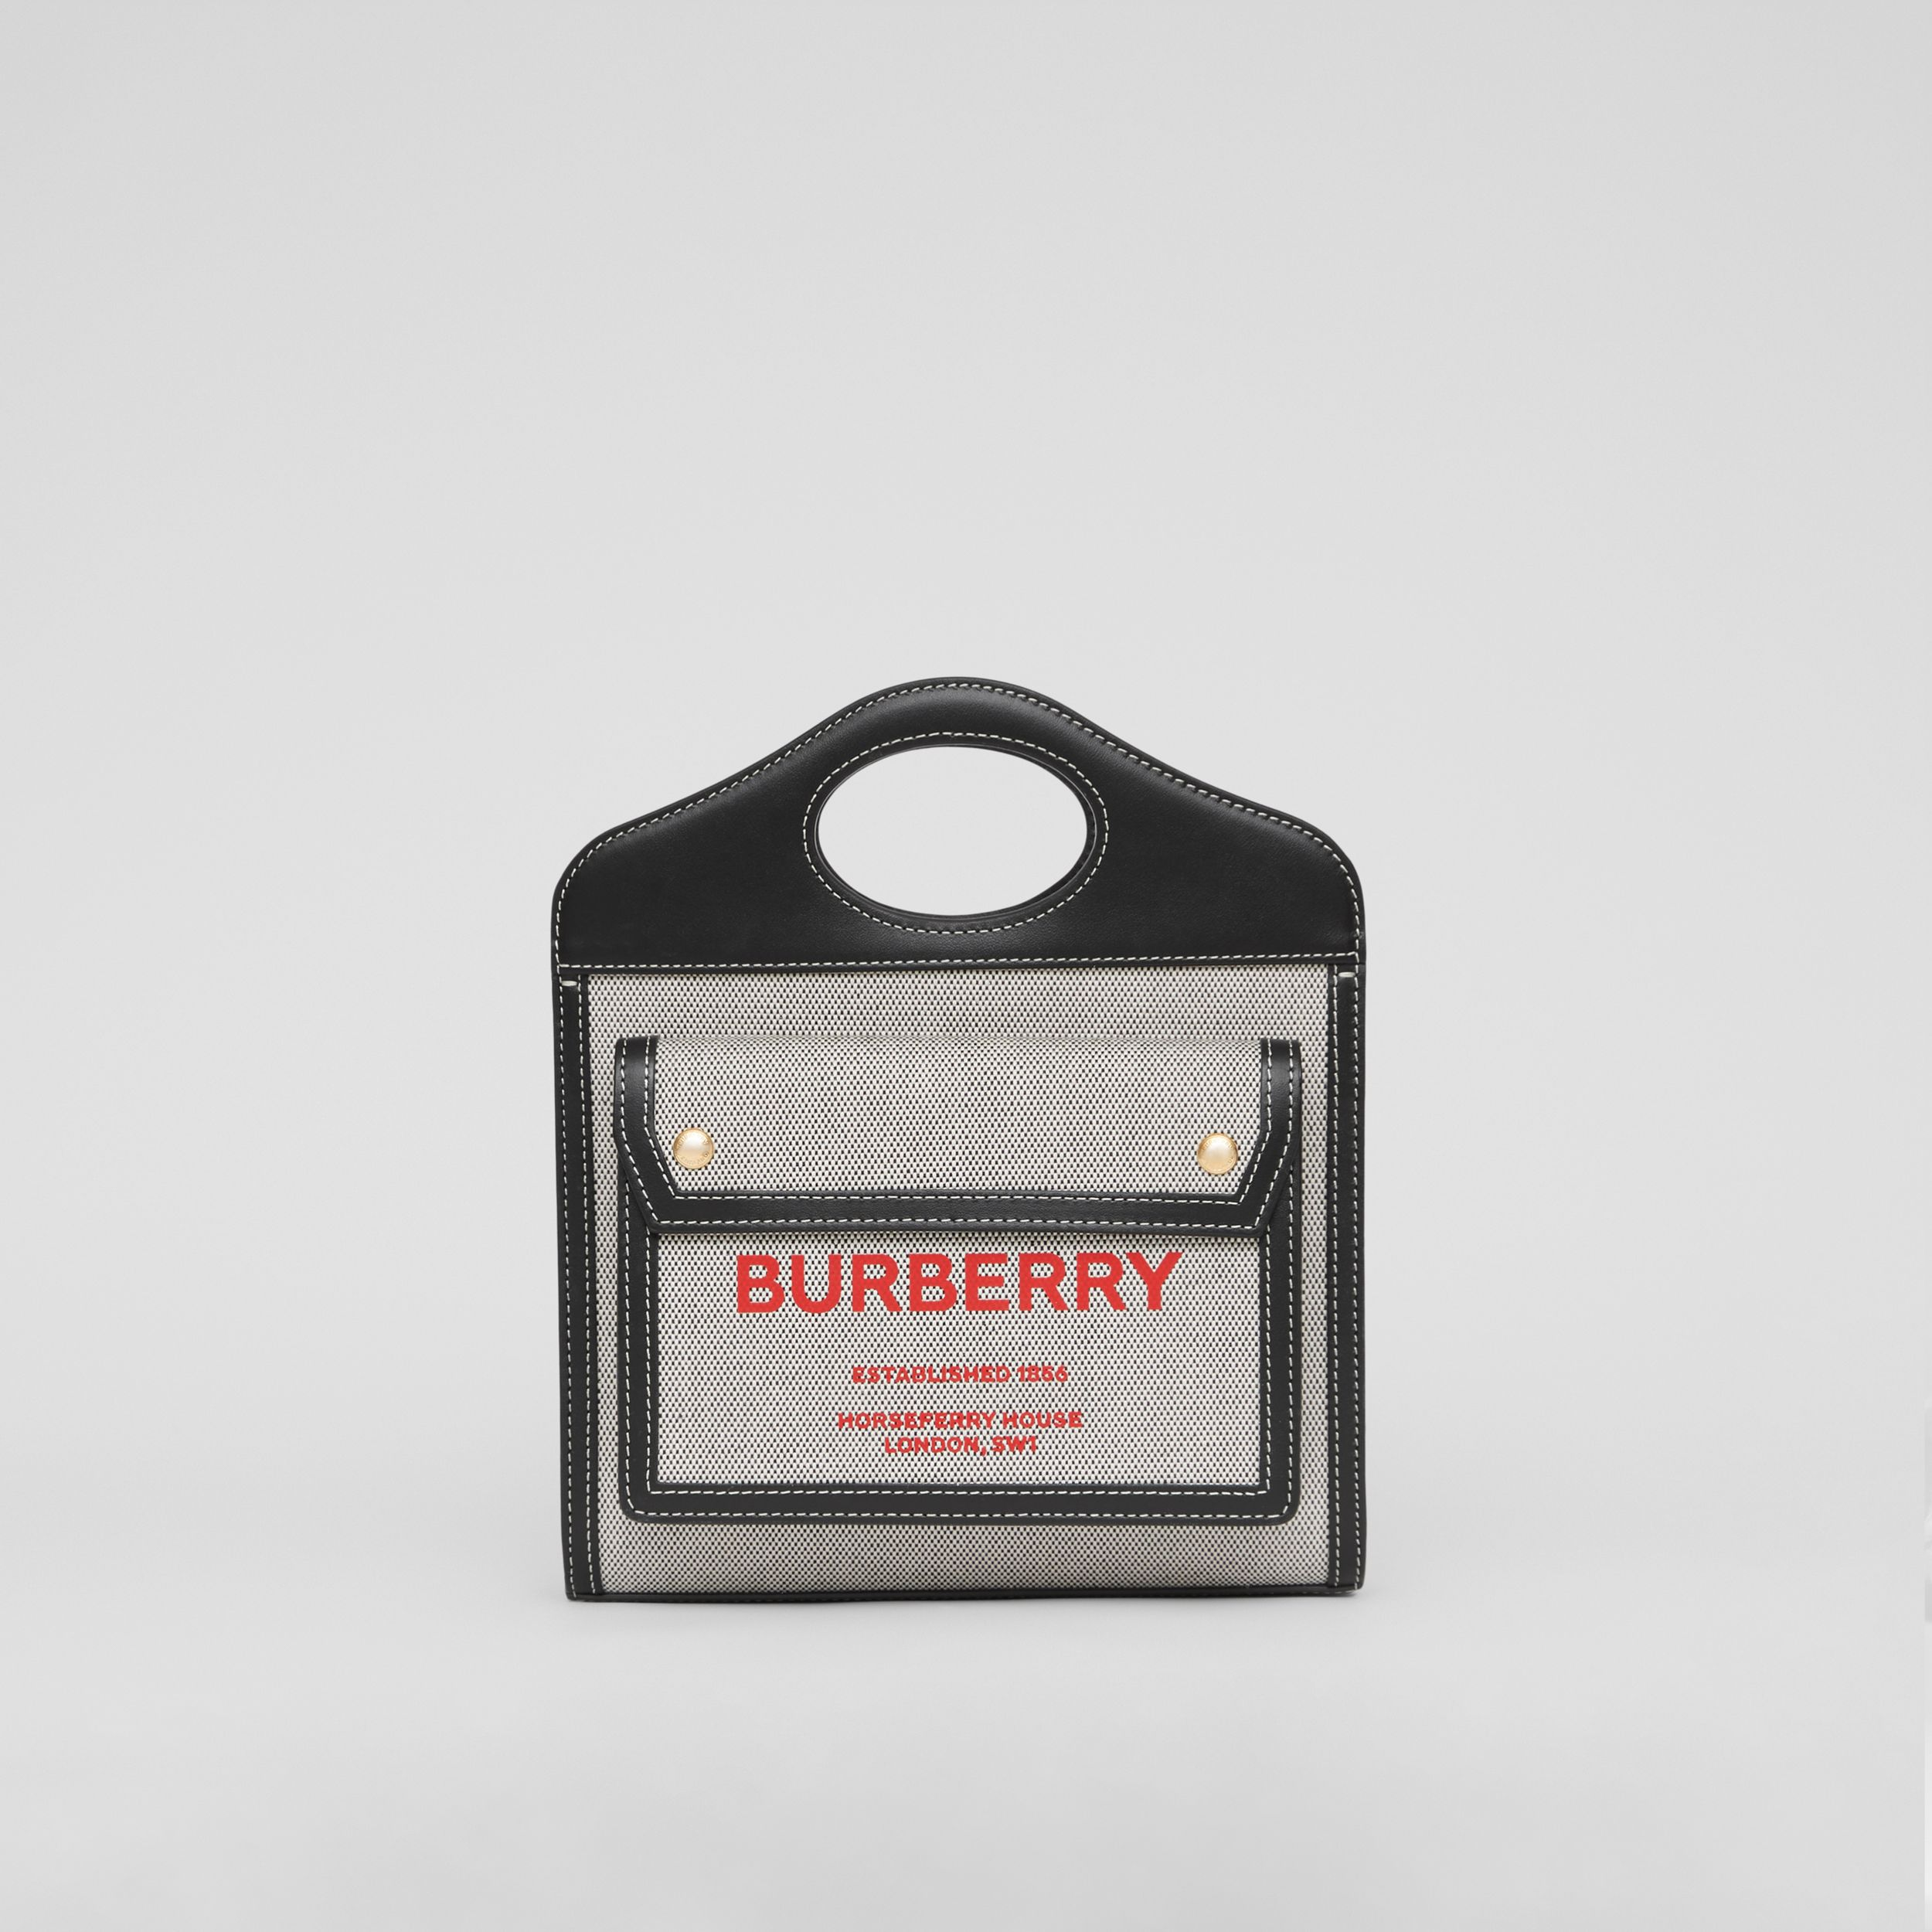 Mini Two-tone Canvas and Leather Pocket Bag in Black/fiery Red - Women | Burberry United States - 1